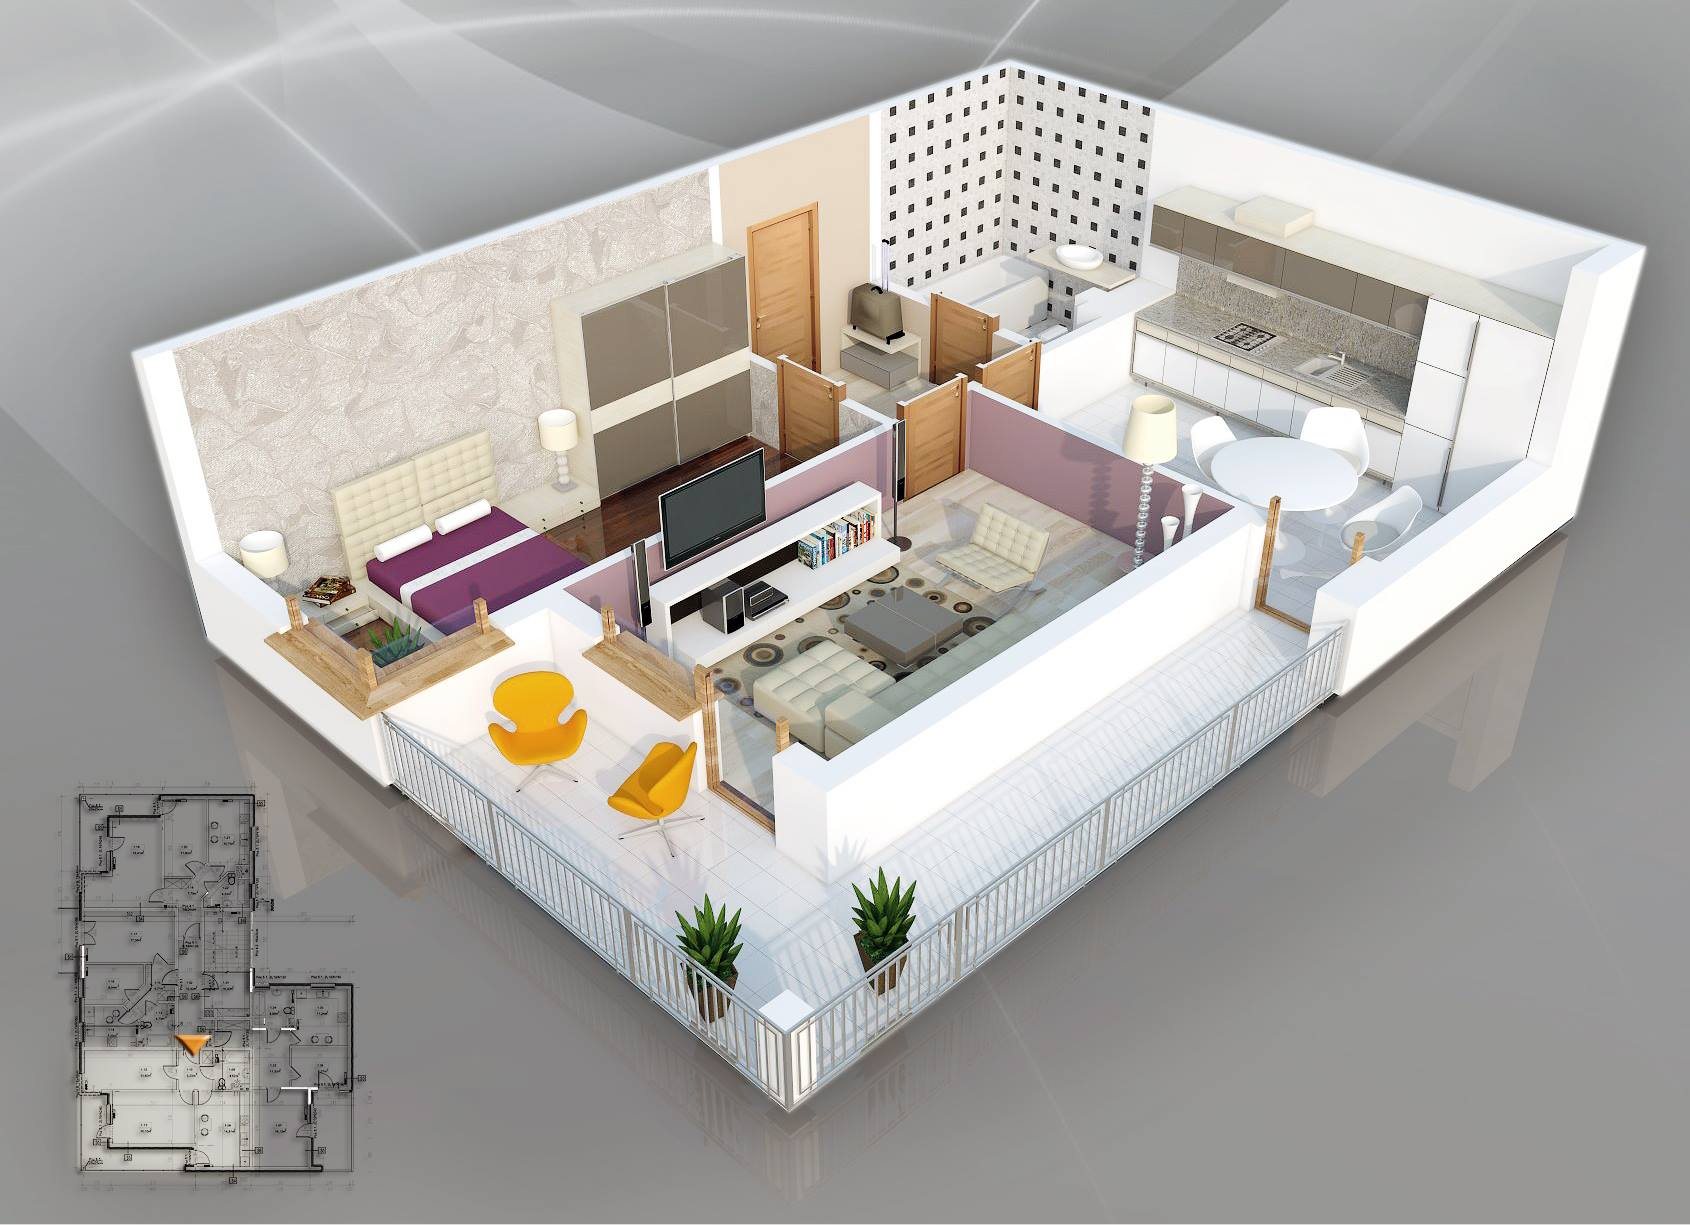 house plans reading surprising trends house plans simple bedroom house bedroom house floor plans bedroom bathroom house plans